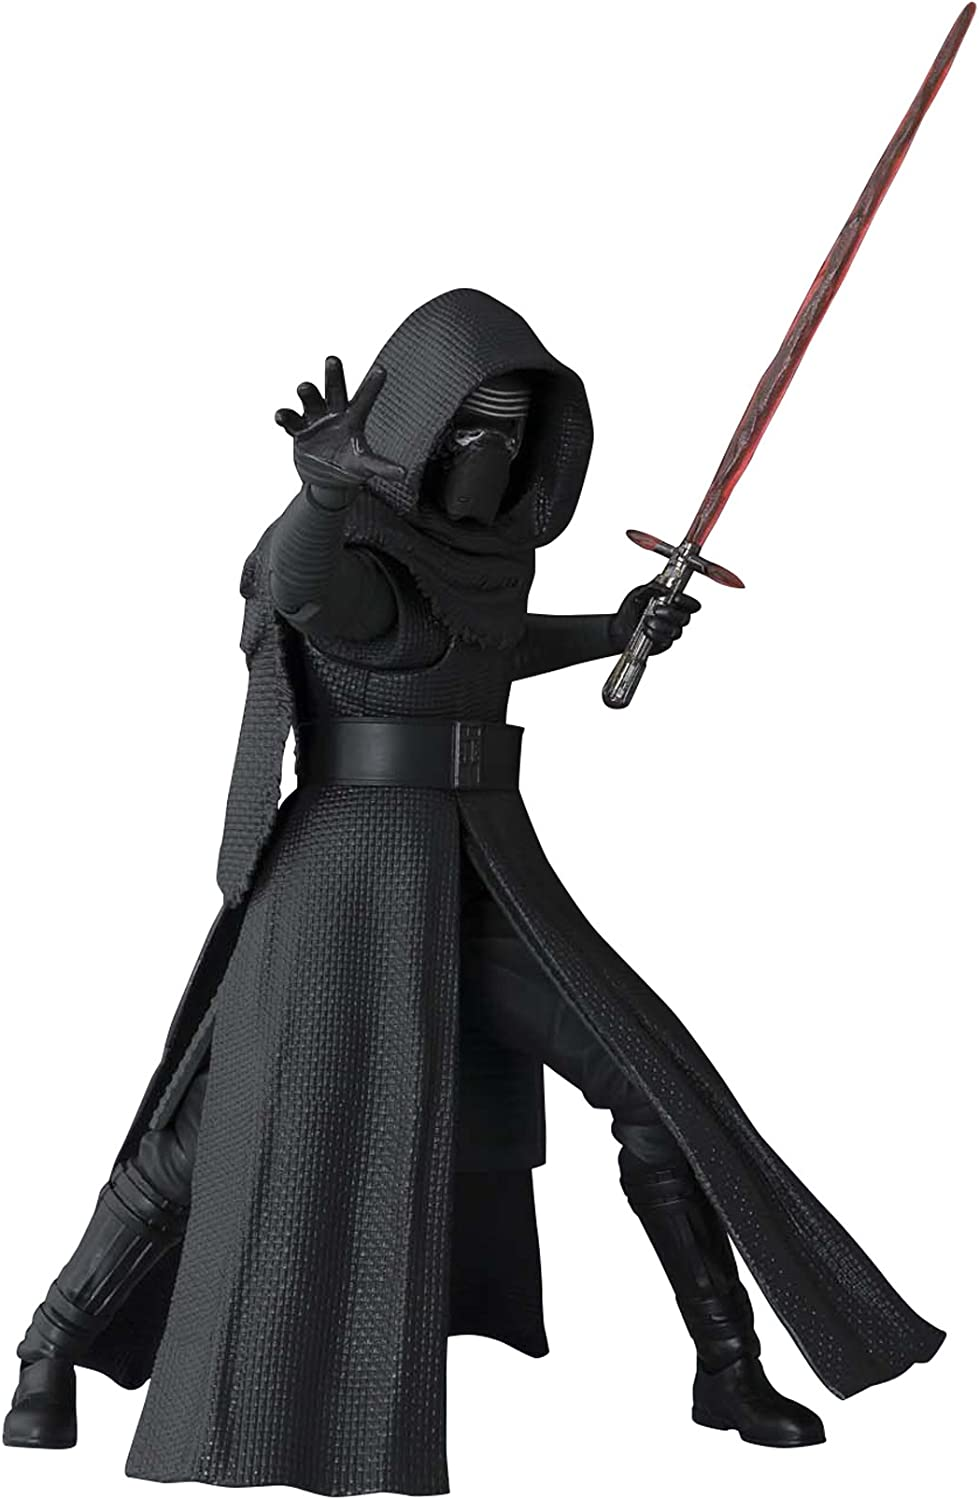 Figuarts Star Wars Cairo Ren about 160mm ABS /& PVC painted action figu JP S.H